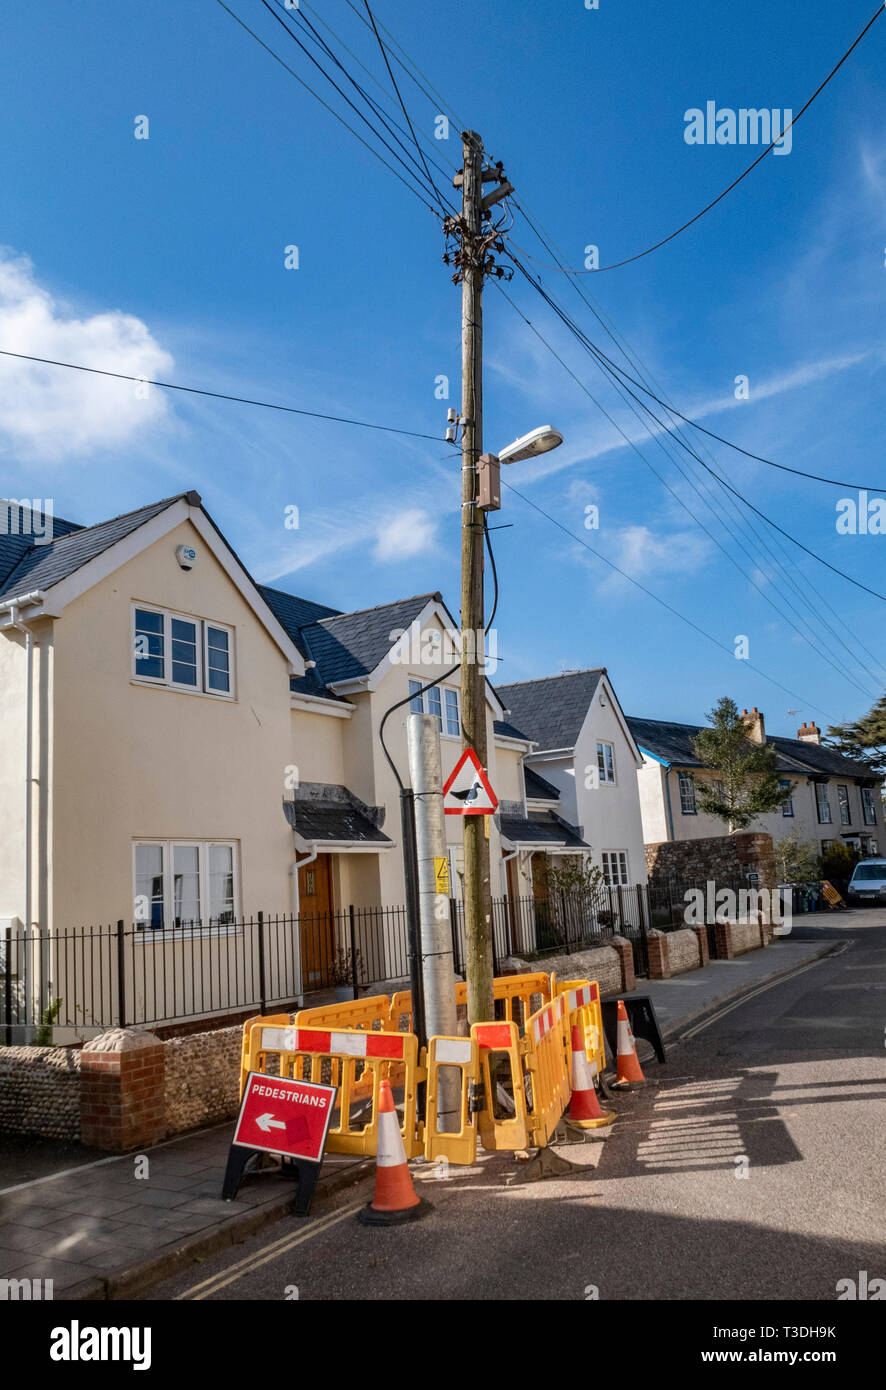 Work to replace telegraph telephone poles masts in Mill Street, Sidmouth, Devon, UK Stock Photo